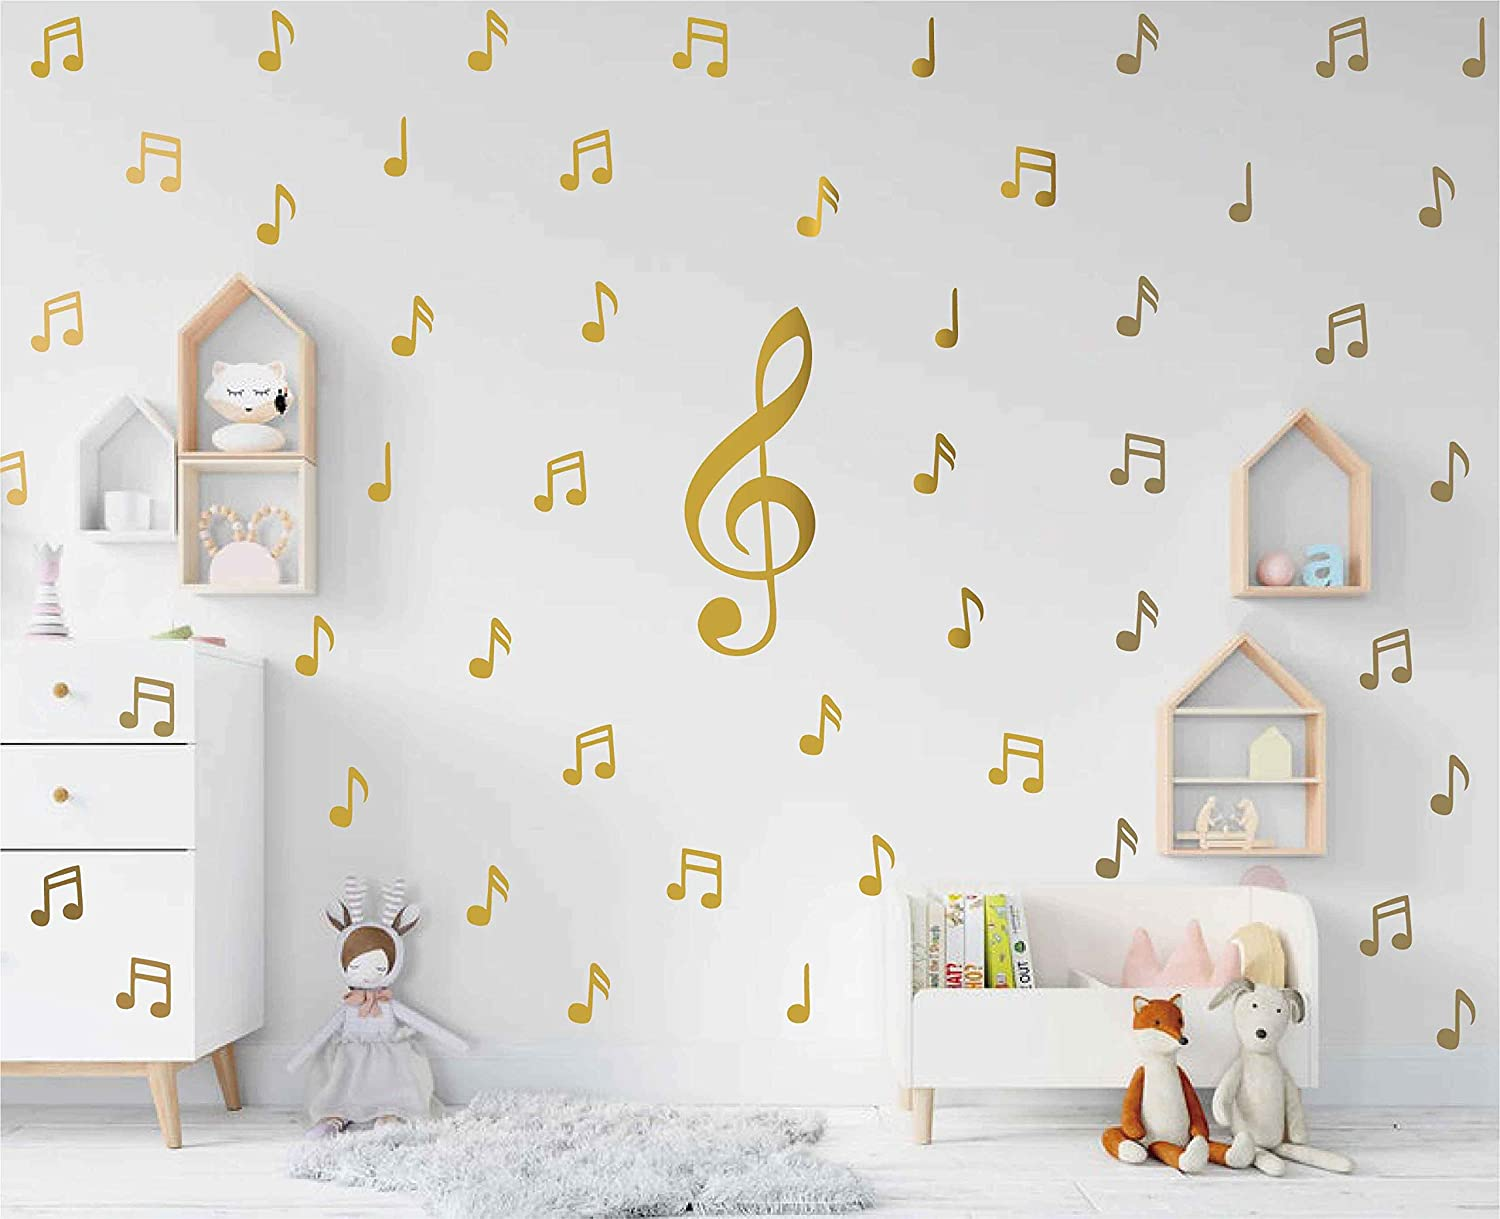 Music Note Pattern Sticker for Kid's Bedroom Music Lover Decorate Wall Decal Baby Girl Removable Home Decor AD04 (Gold)